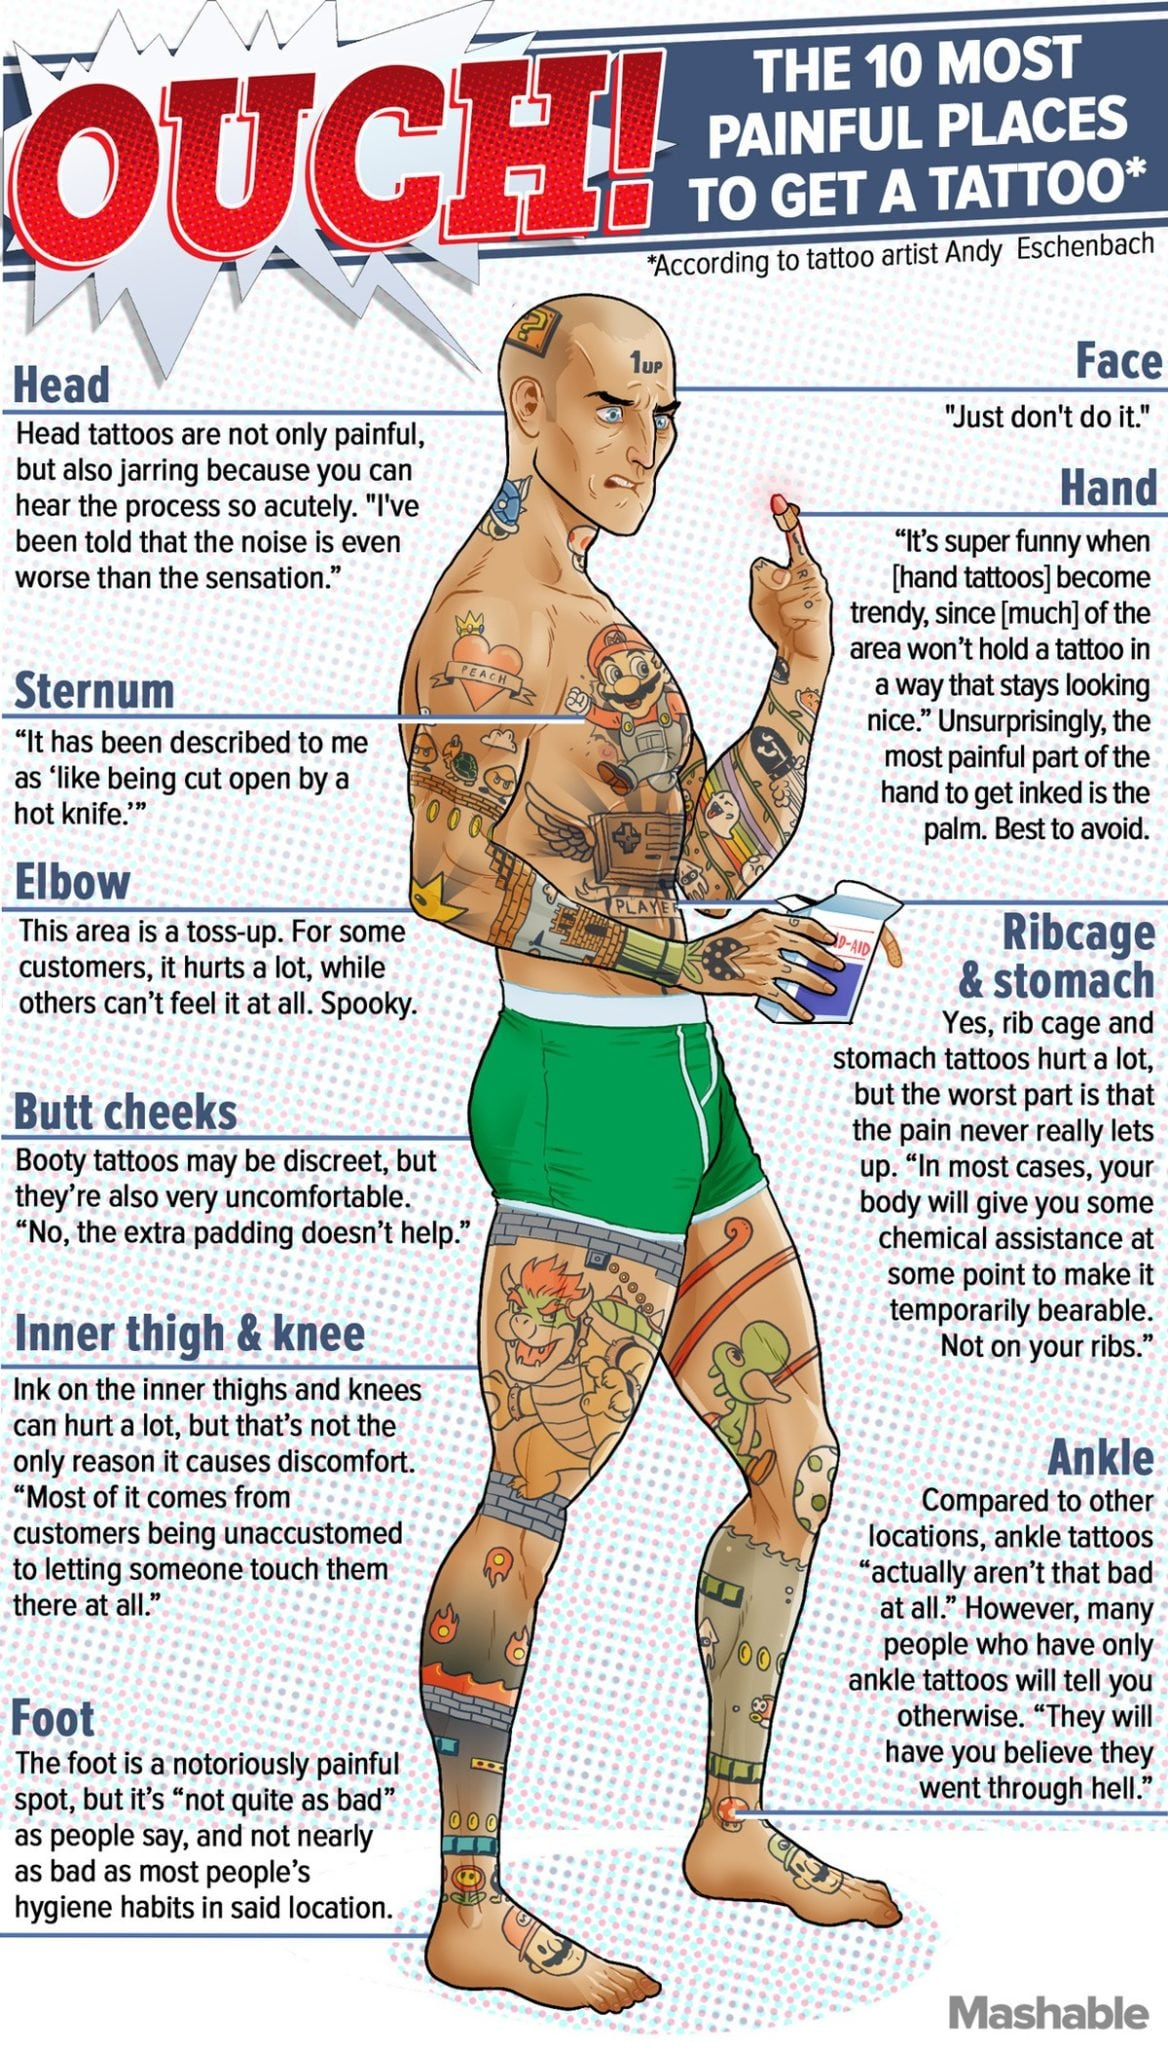 Infographic: 10 Most Painful Places On The Body To Get A Tattoo -tattoos, tattoo, infographic